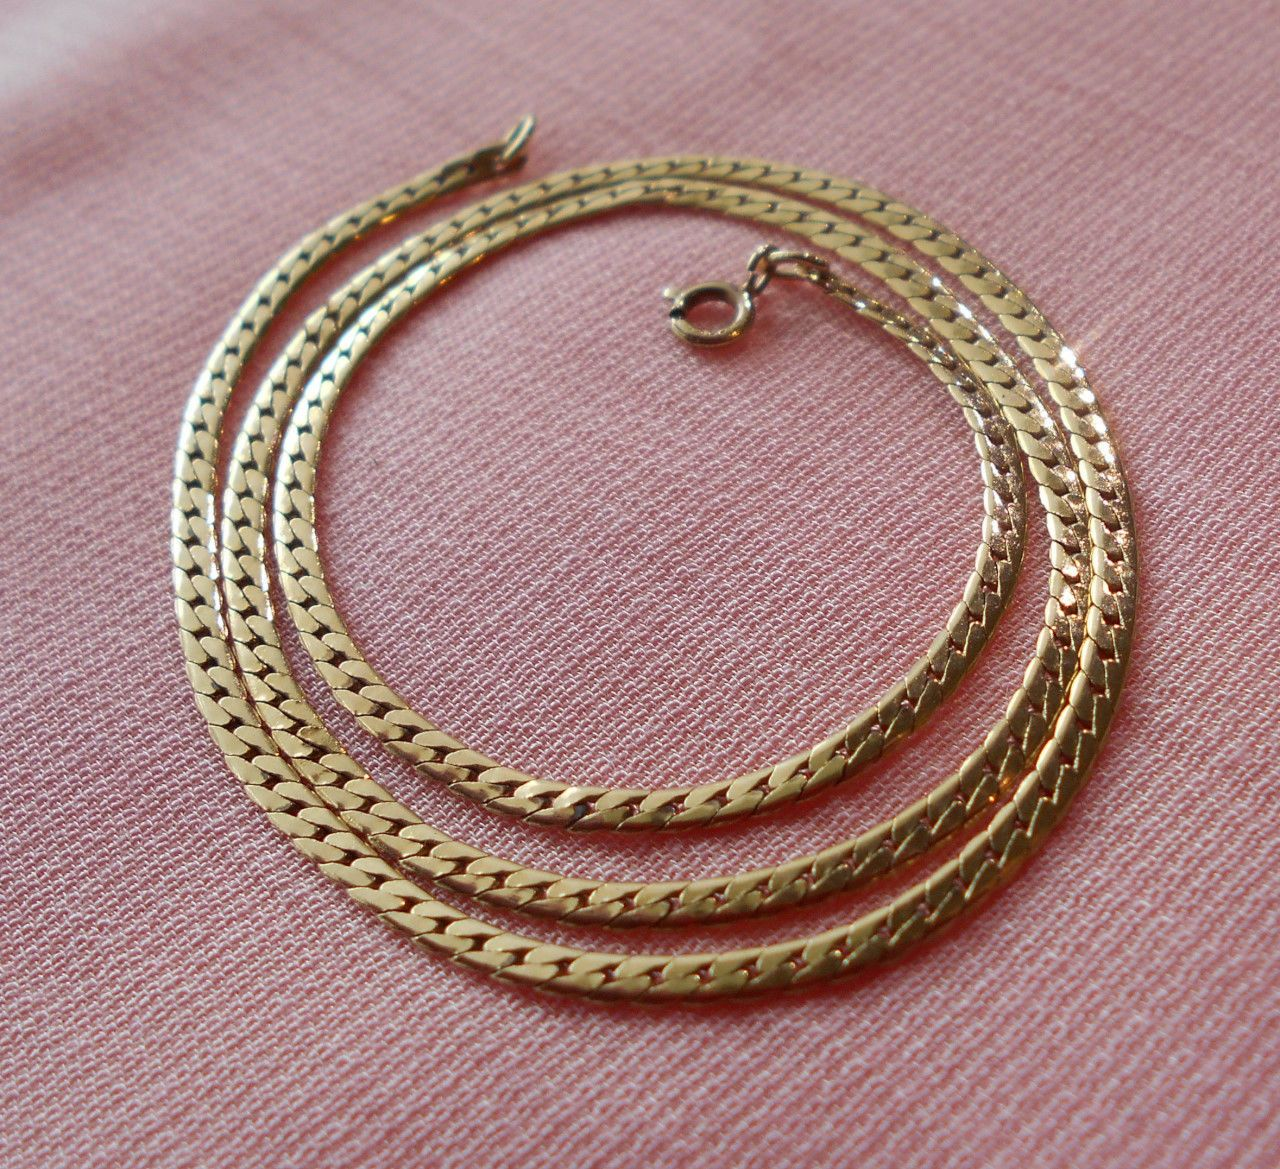 "14K Solid Gold Flat Chain Necklace Herringbone 2.2 mm 4.4 gm 16.25"" Vintage https://t.co/XyJgCBEM33 https://t.co/HJKpUnBuS7"